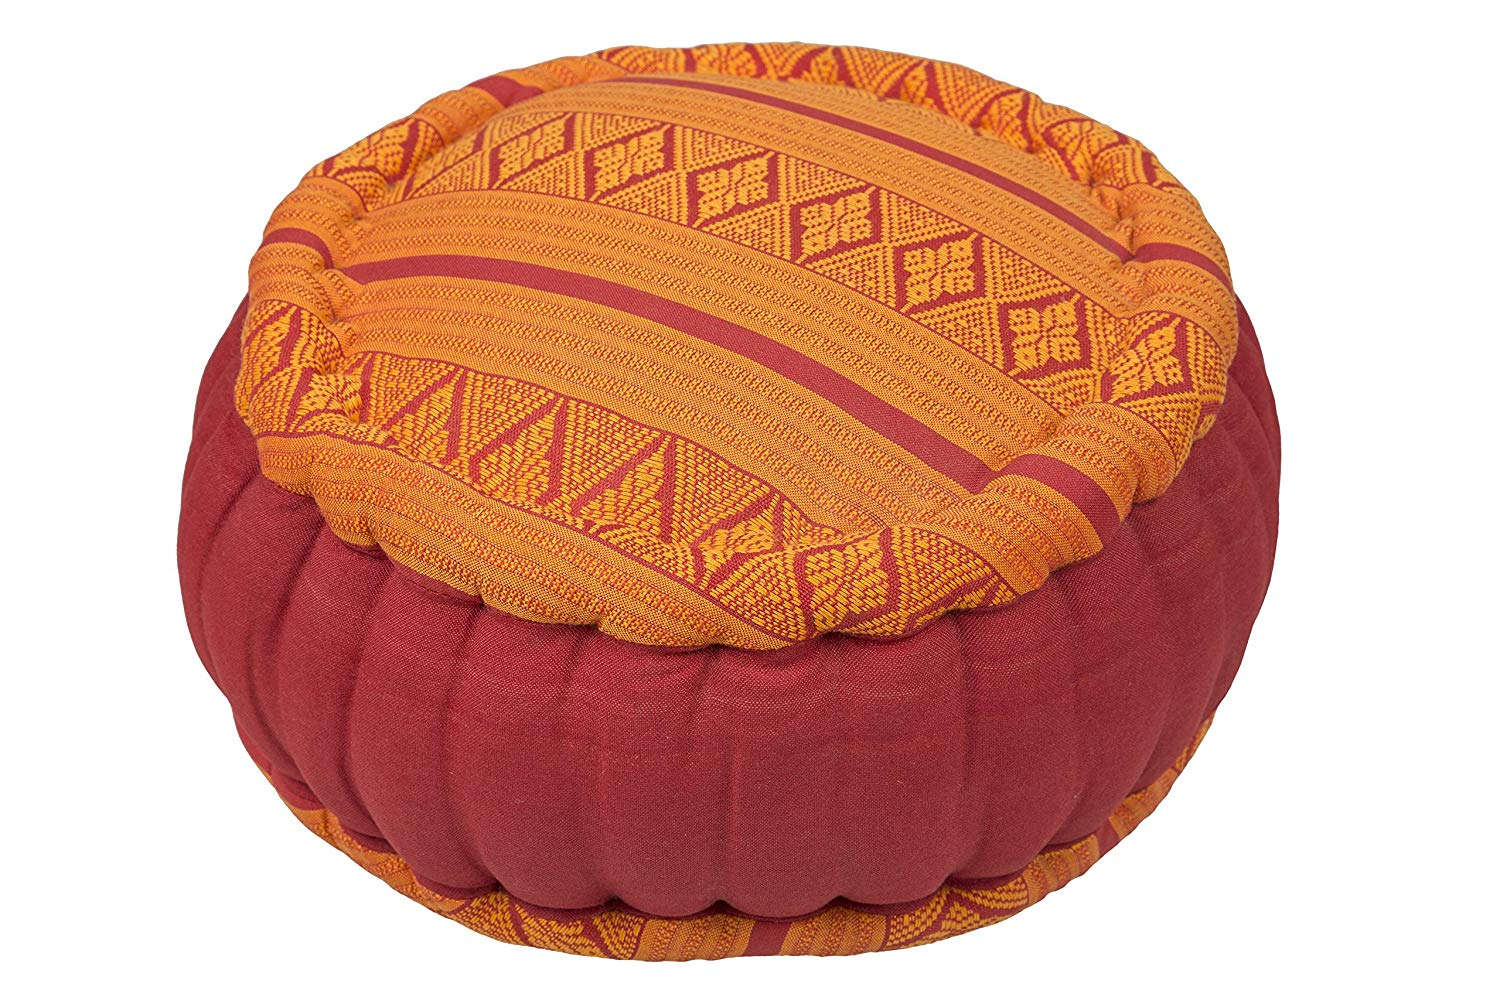 Kapok Dreams yoga cushion